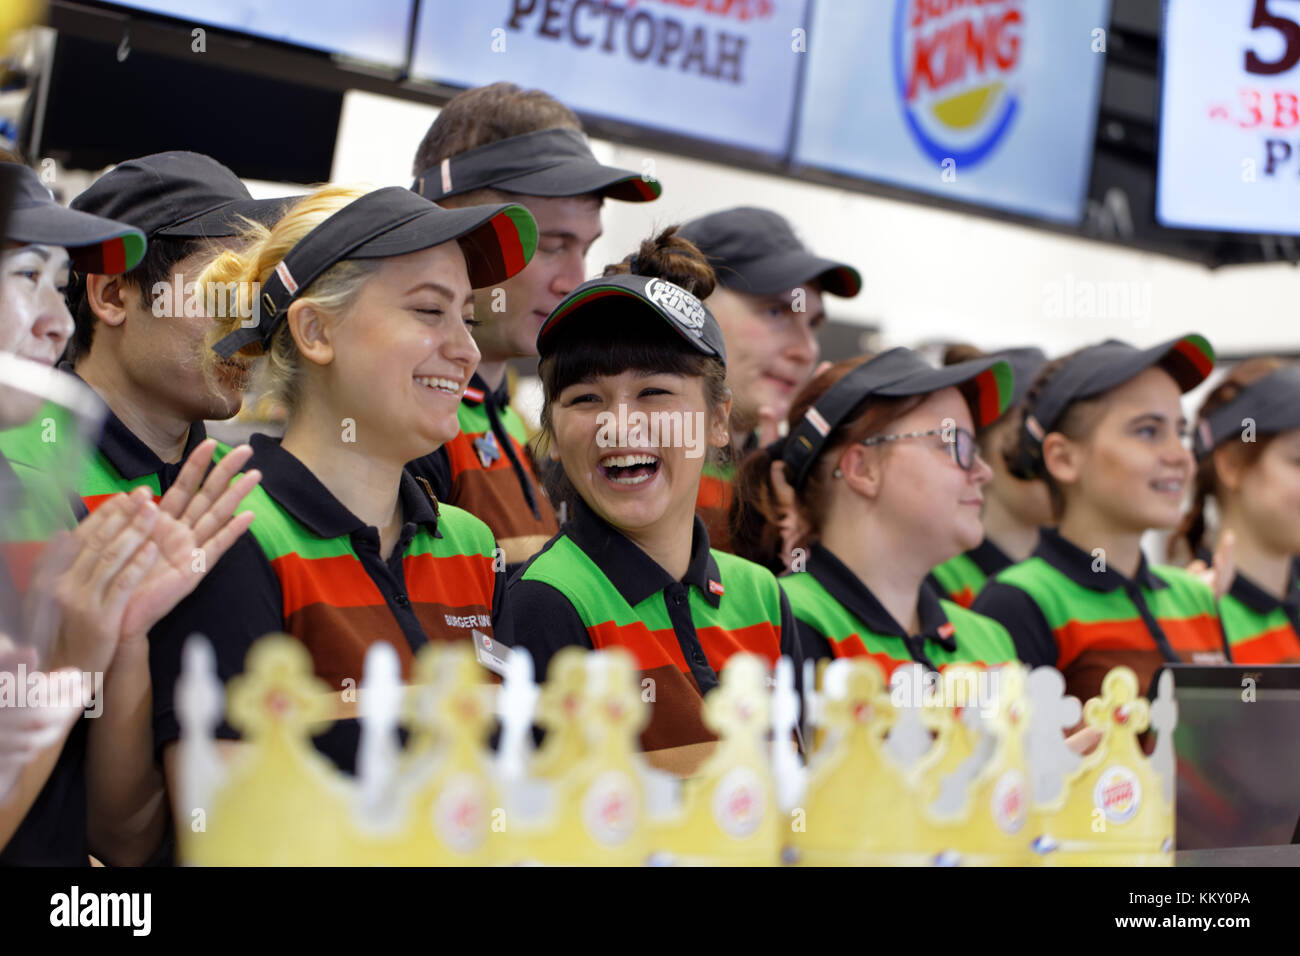 St. Petersburg, Russia - November 29, 2017: Staff of 500th Burger King restaurant in Russia in the service area - Stock Image